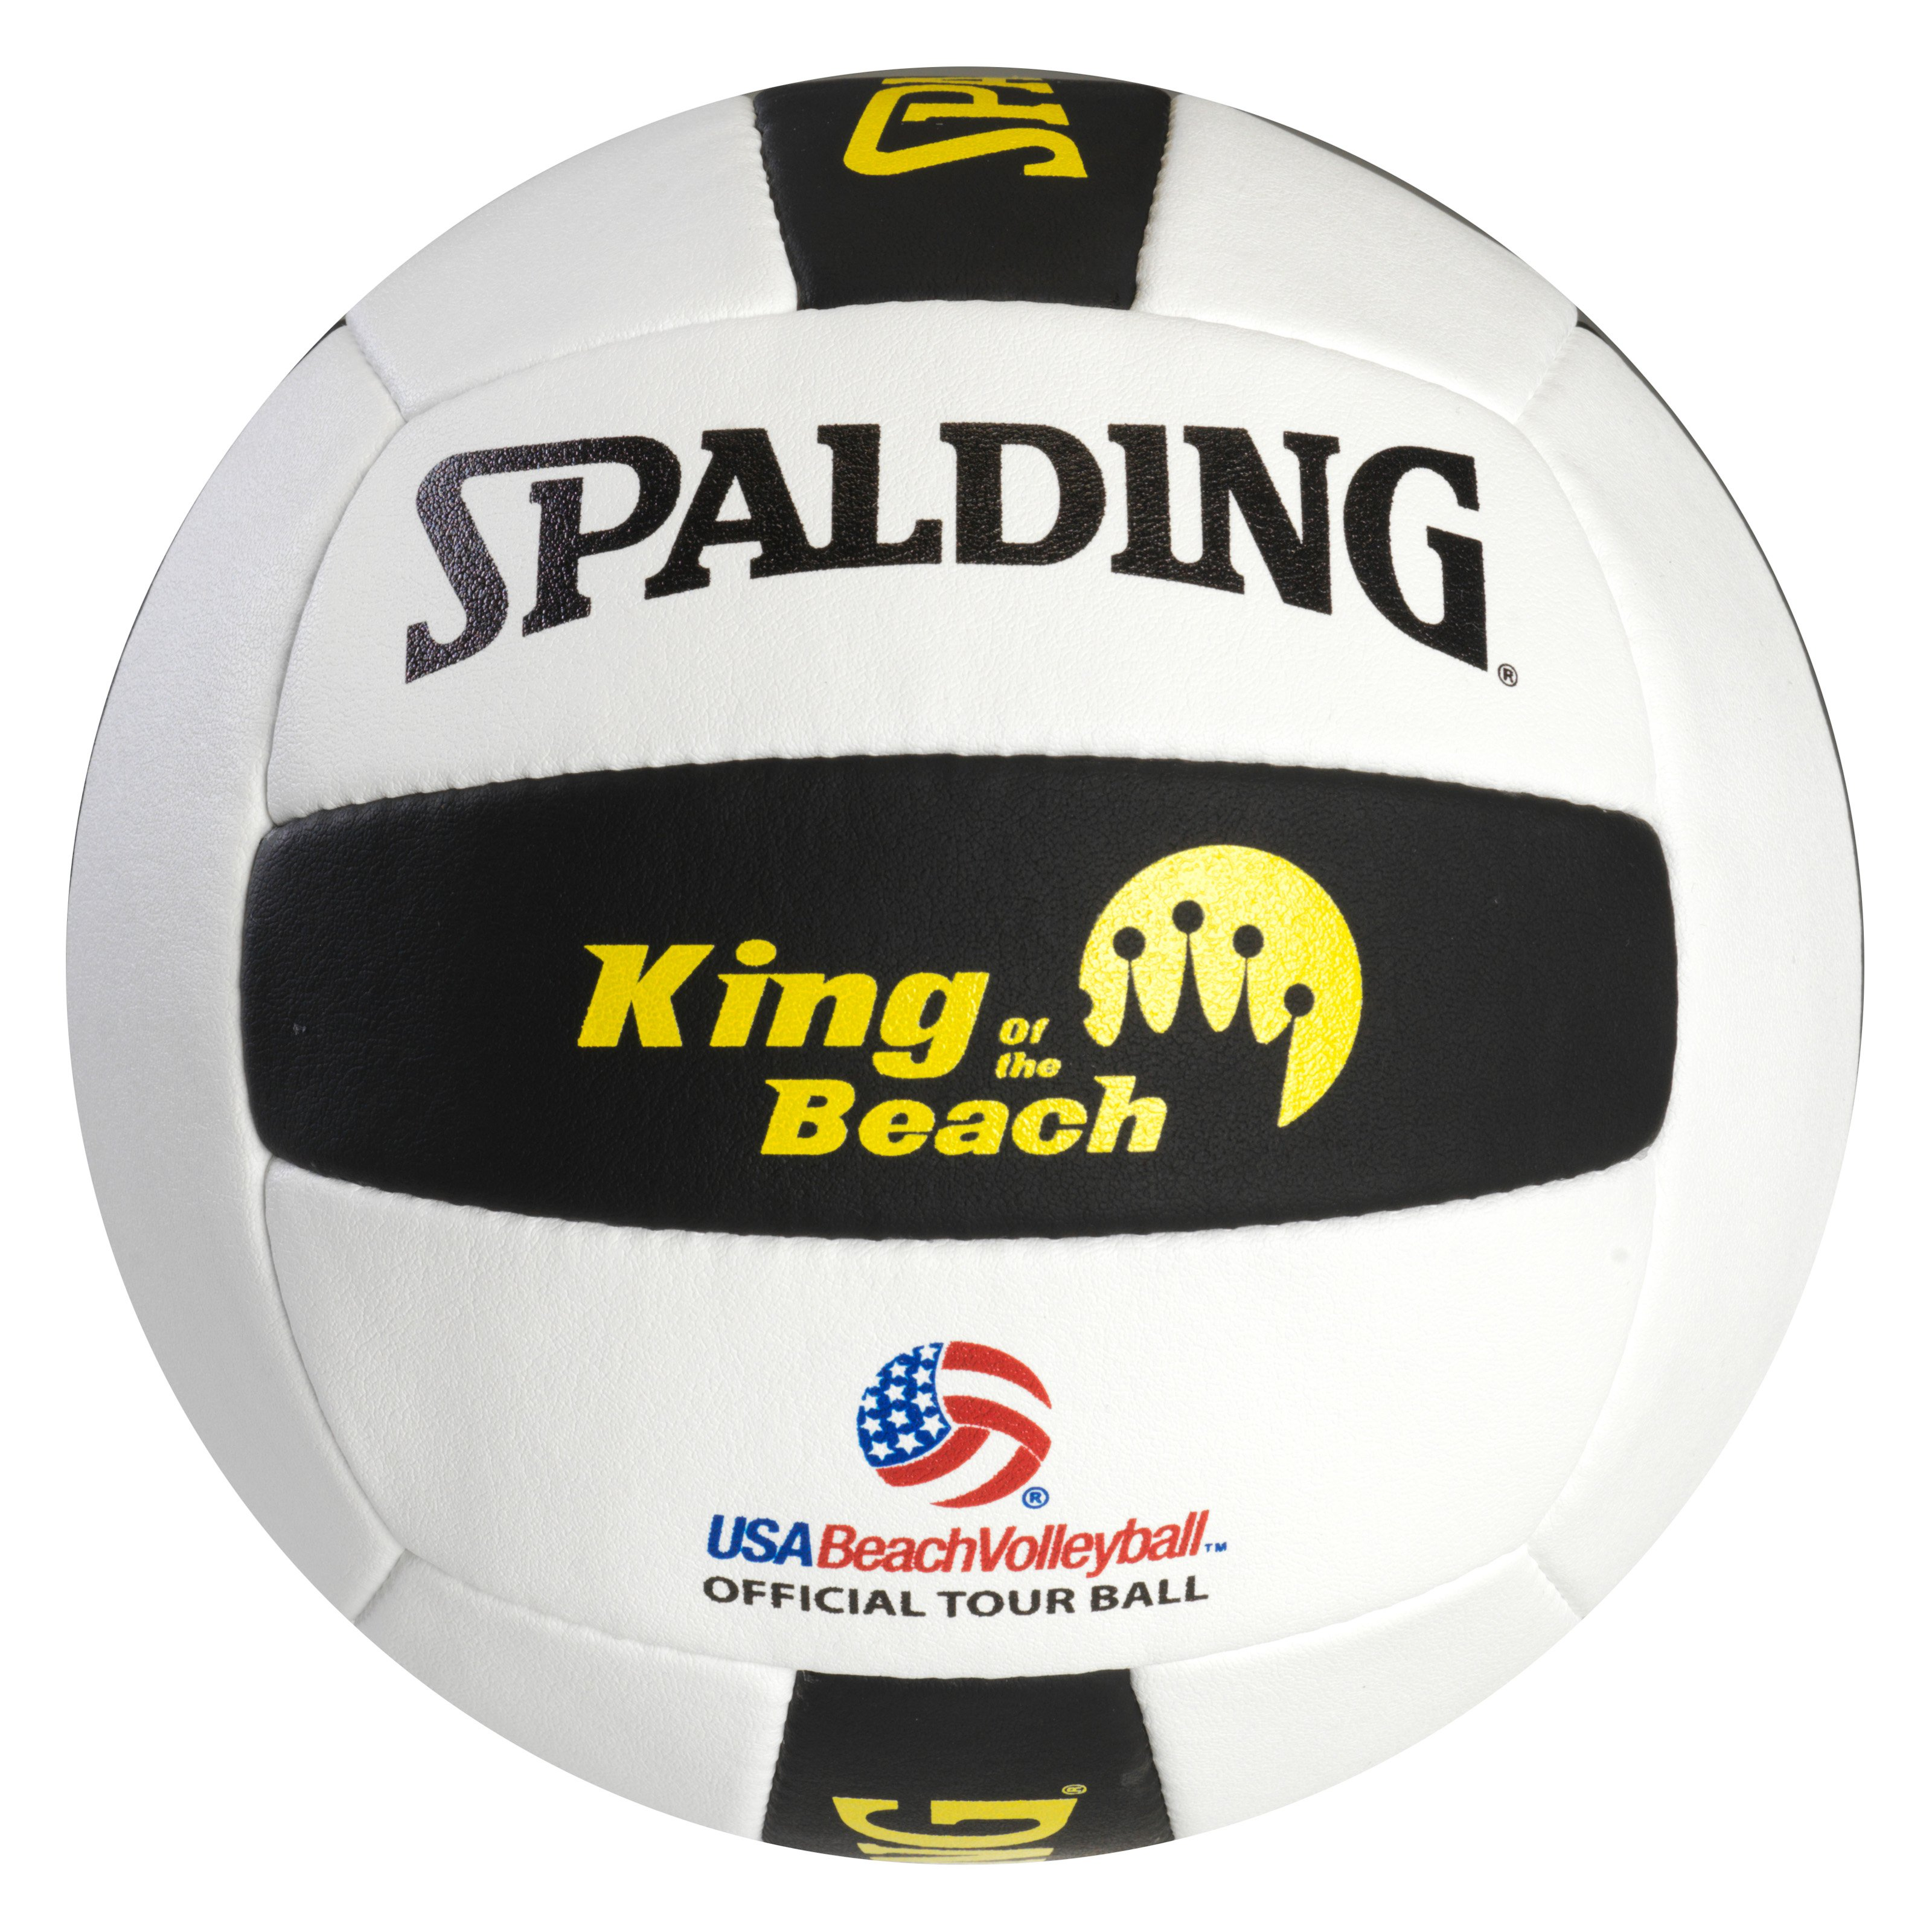 Spalding King of the Beach/USA Beach Official Tour Volleyball